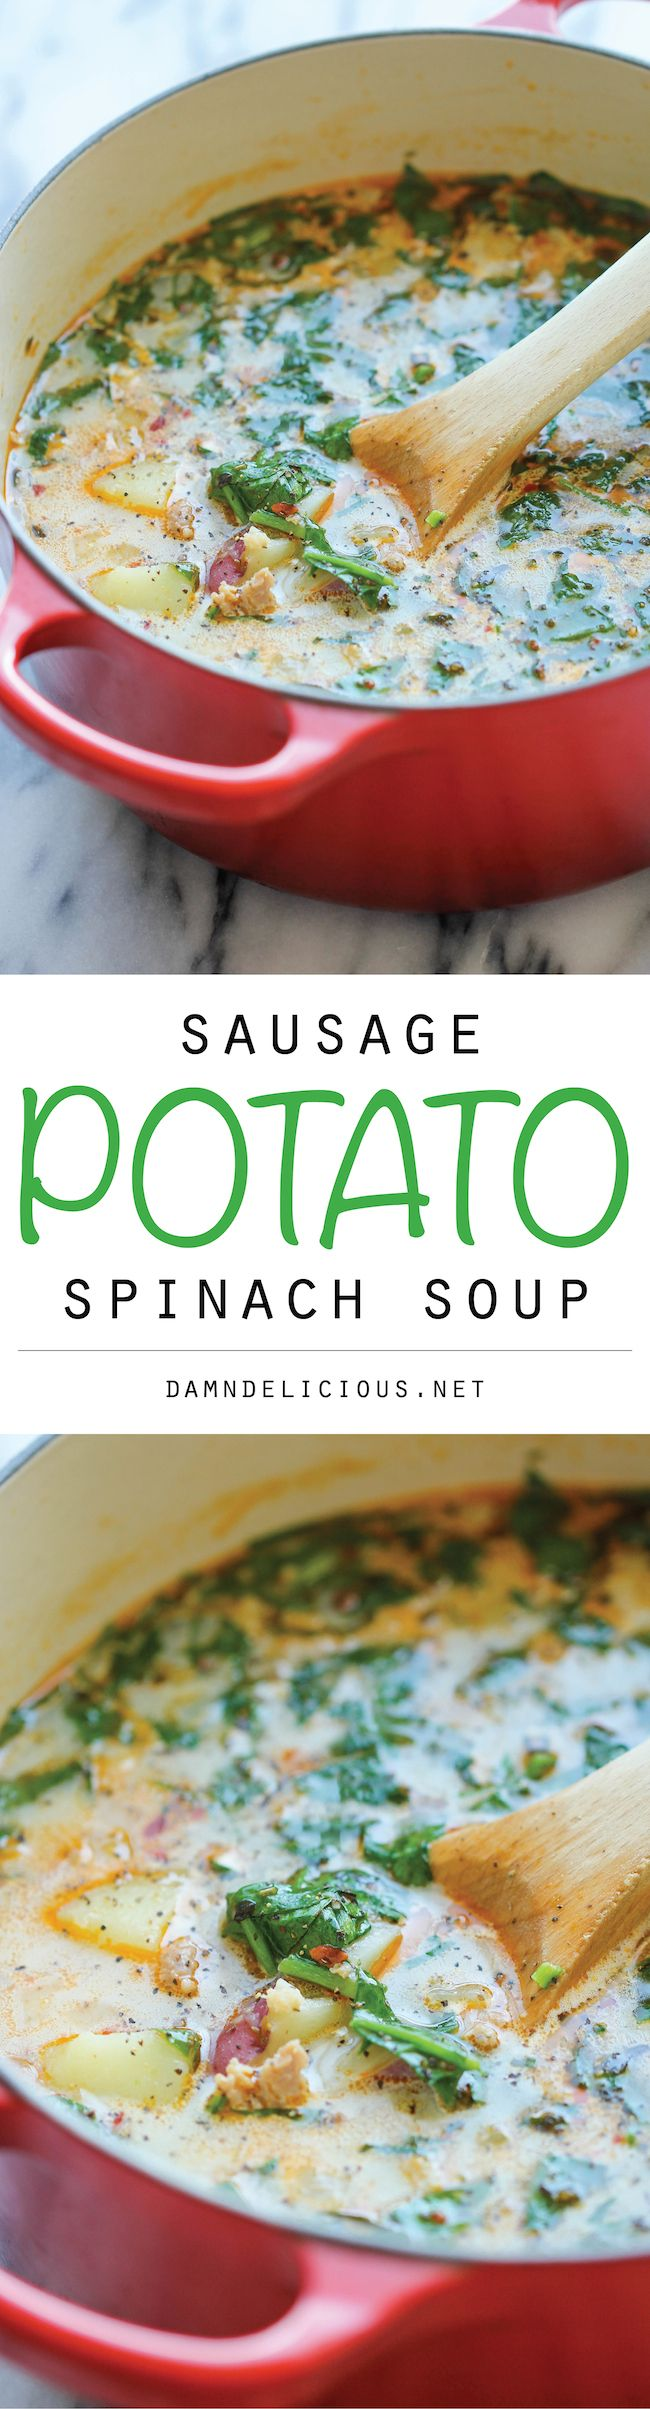 ... Soup Recipes, Sausage Soup Recipes, Recipes Soup, Spinach Soup Recipes